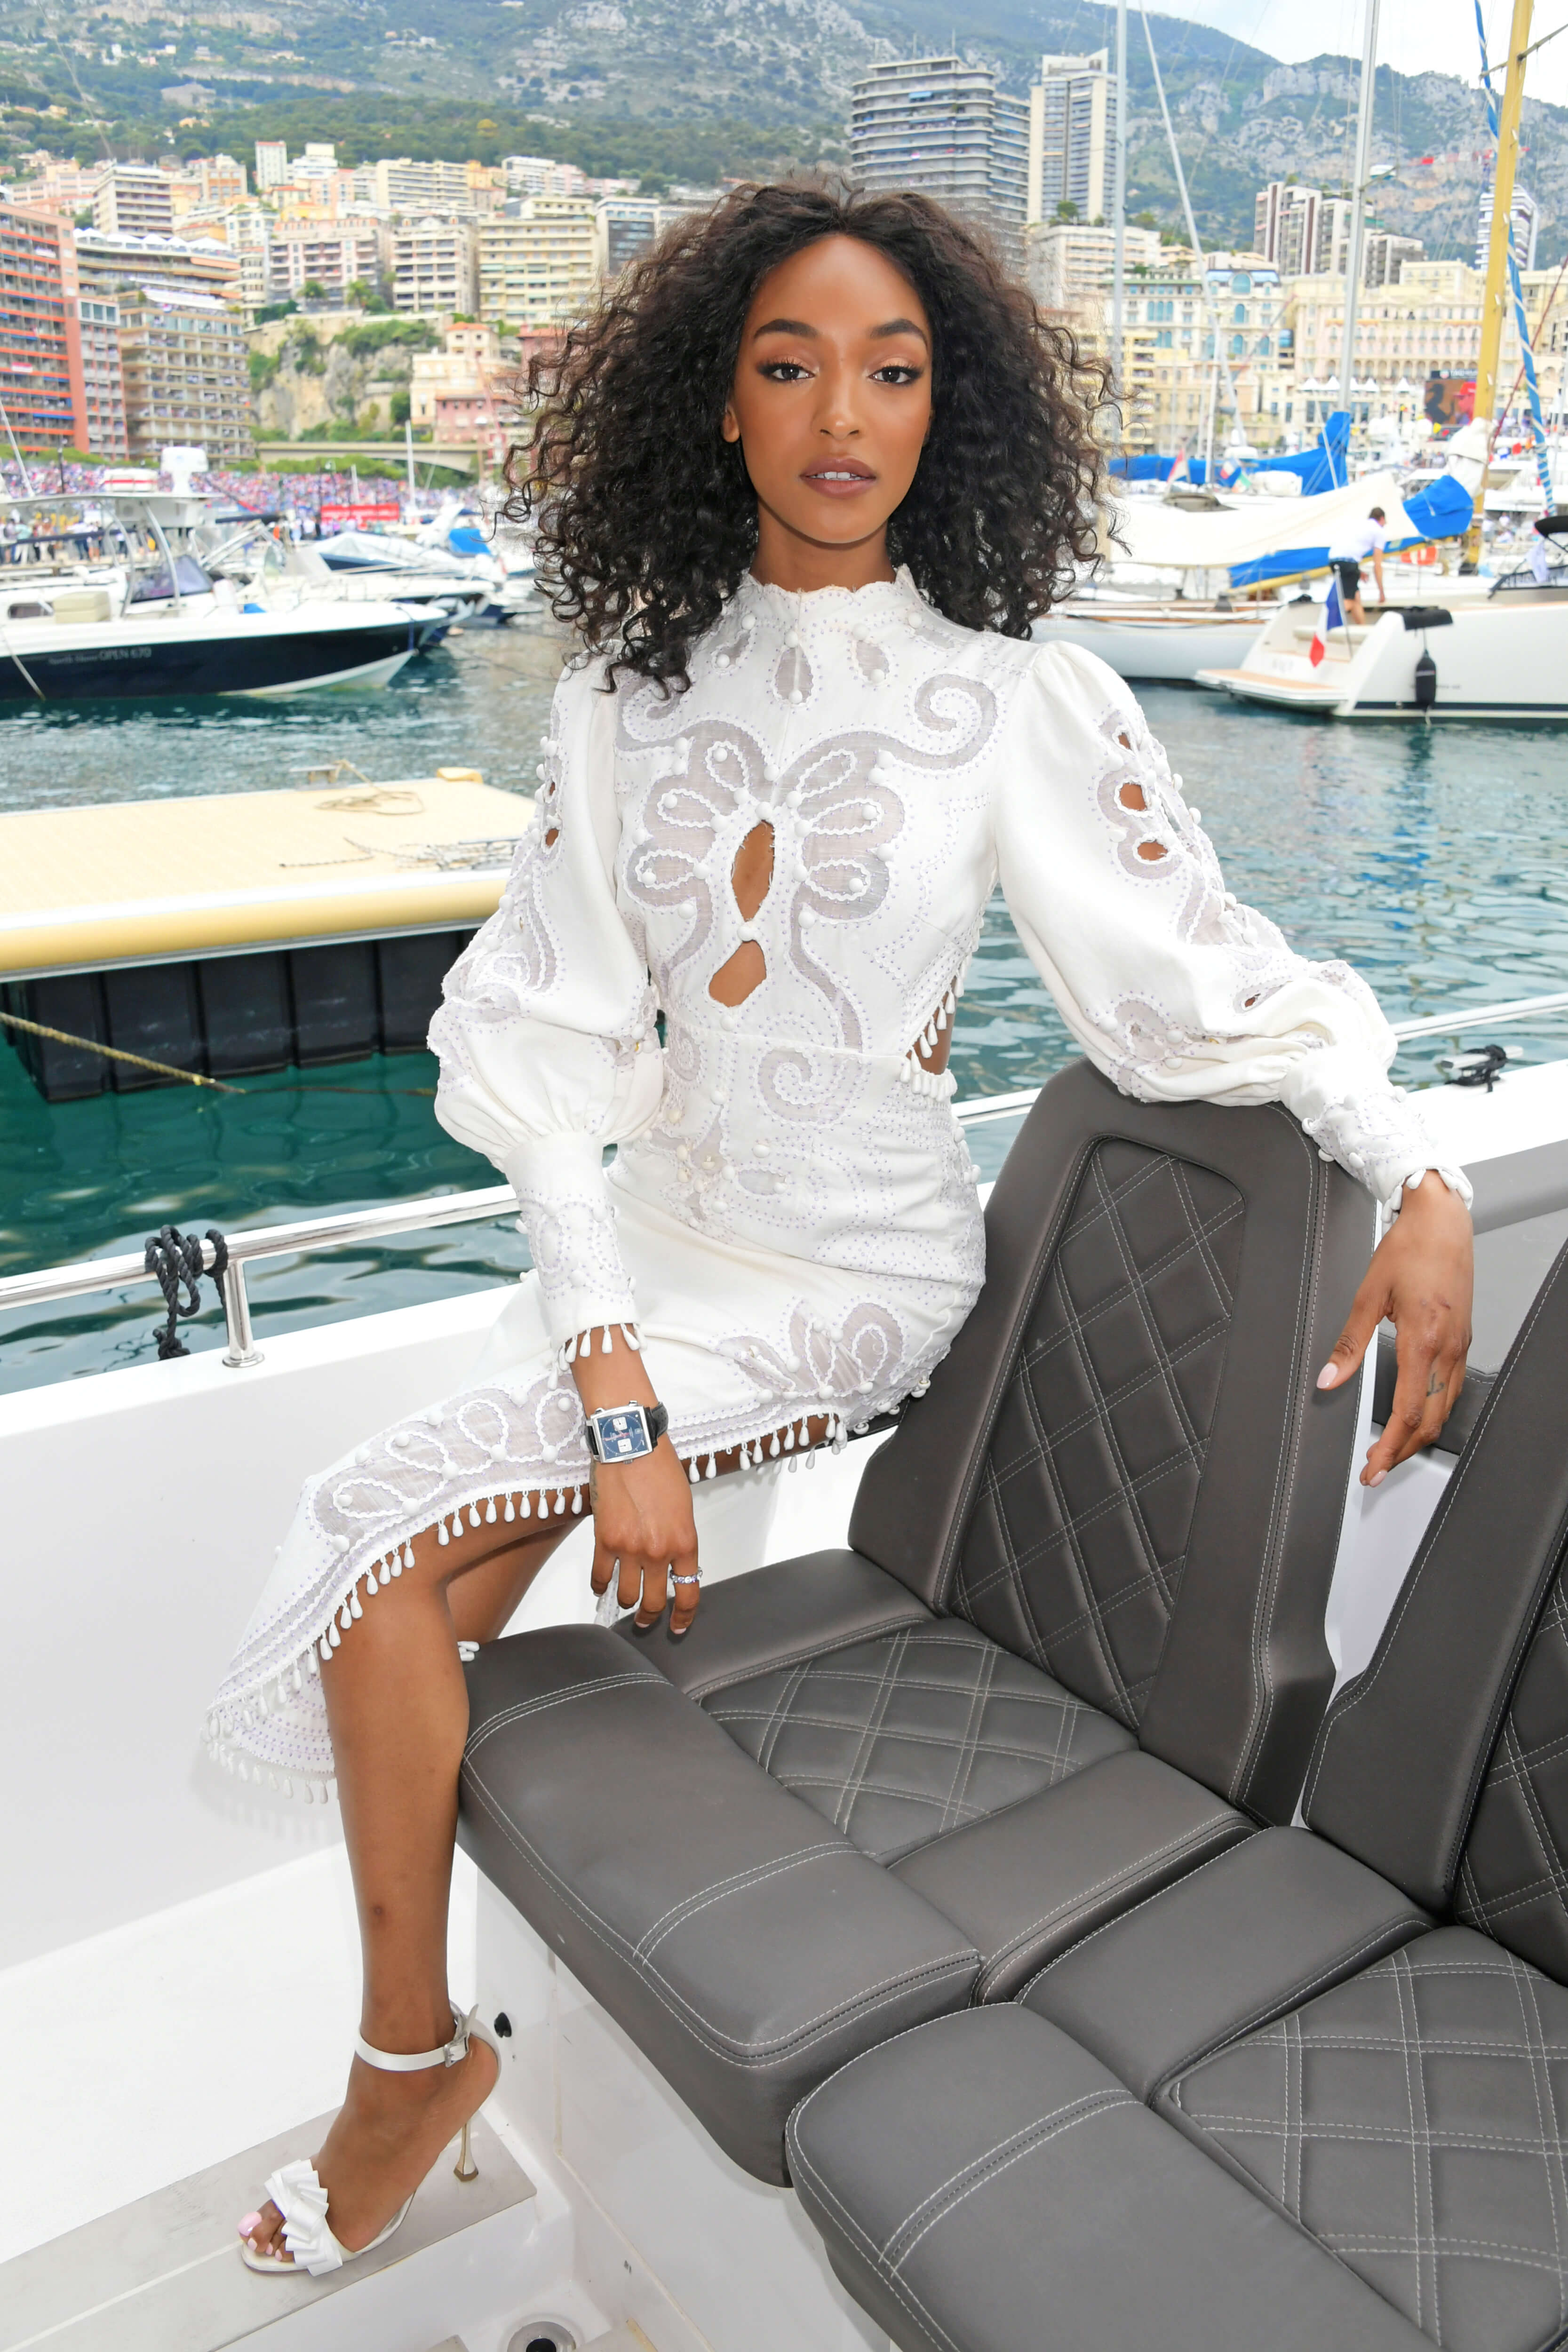 MONACO - MAY 26: Jourdan Dunn celebrates 50 Years of the Monaco Watch at the Formula 1 Grand Prix De Monaco, the legendary event that gave the watch its name in 1969, on May 26, 2019 in Monaco. (Photo by David M. Benett/Dave Benett/Getty Images for TAG Heuer)